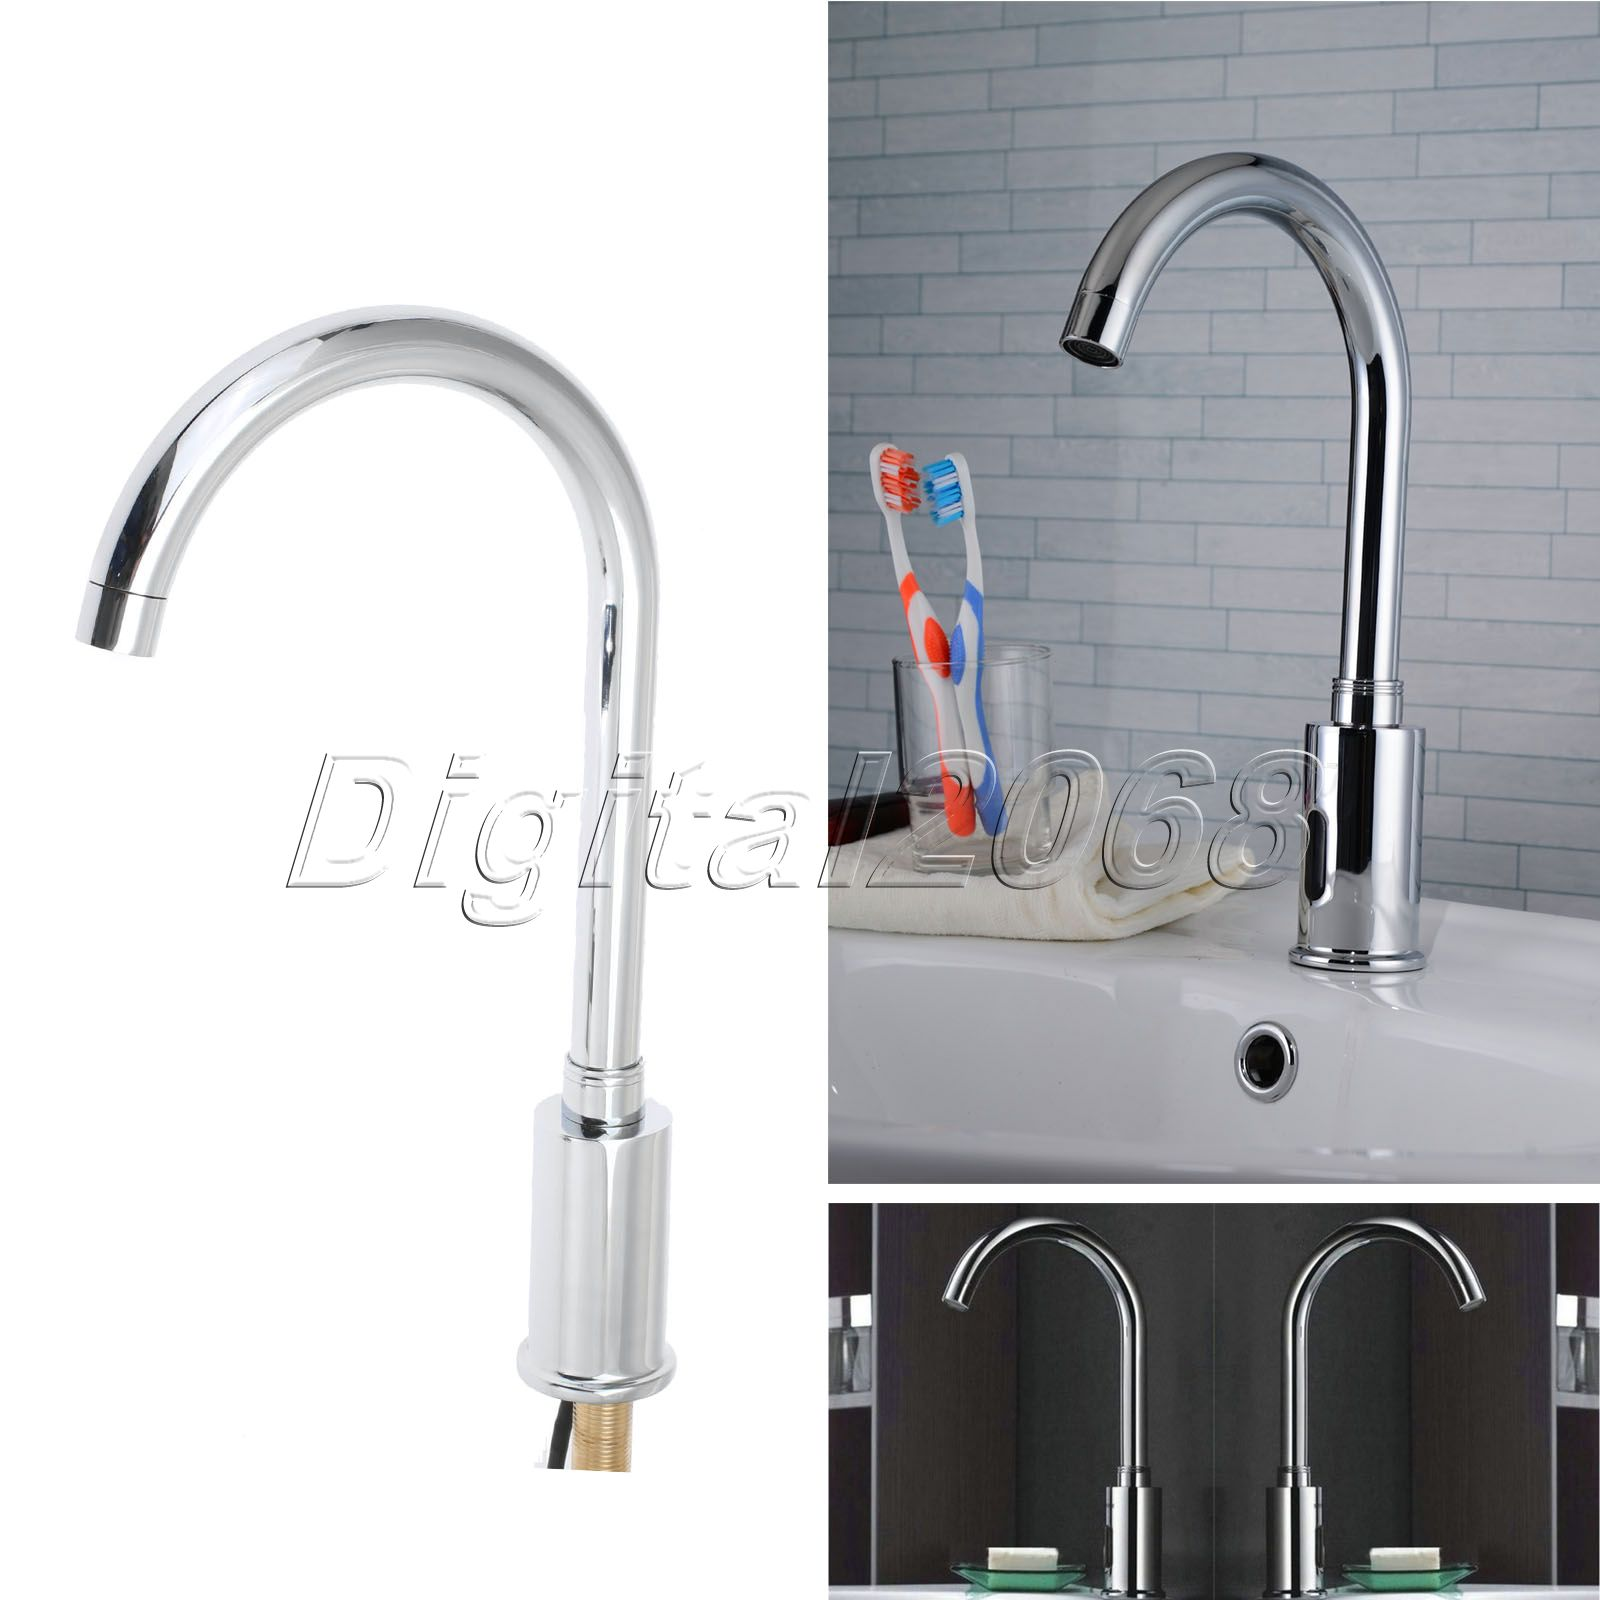 Touchless Bathroom Faucets touchless bathroom faucets promotion-shop for promotional